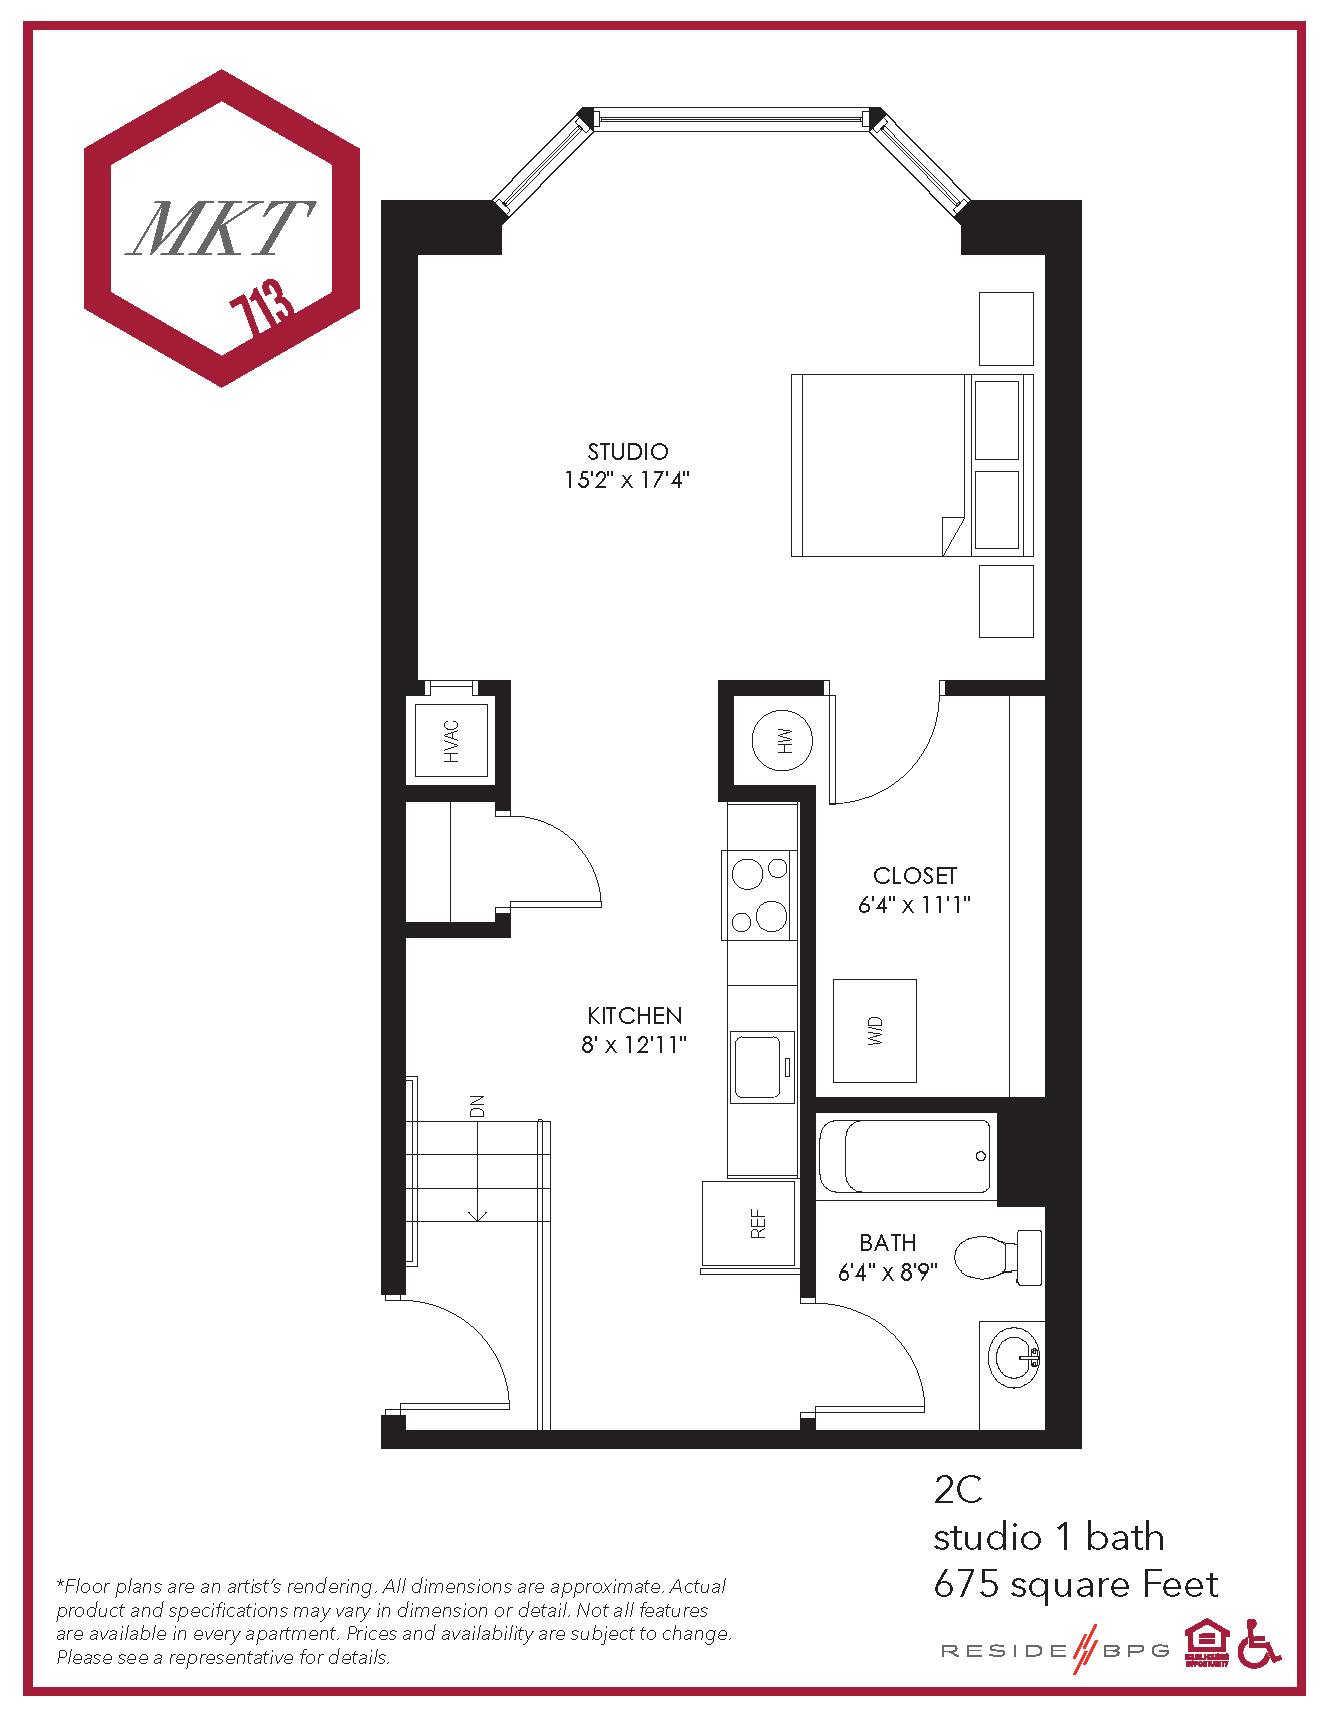 Studio apartment floor plan for downtown wilmington, de apartment